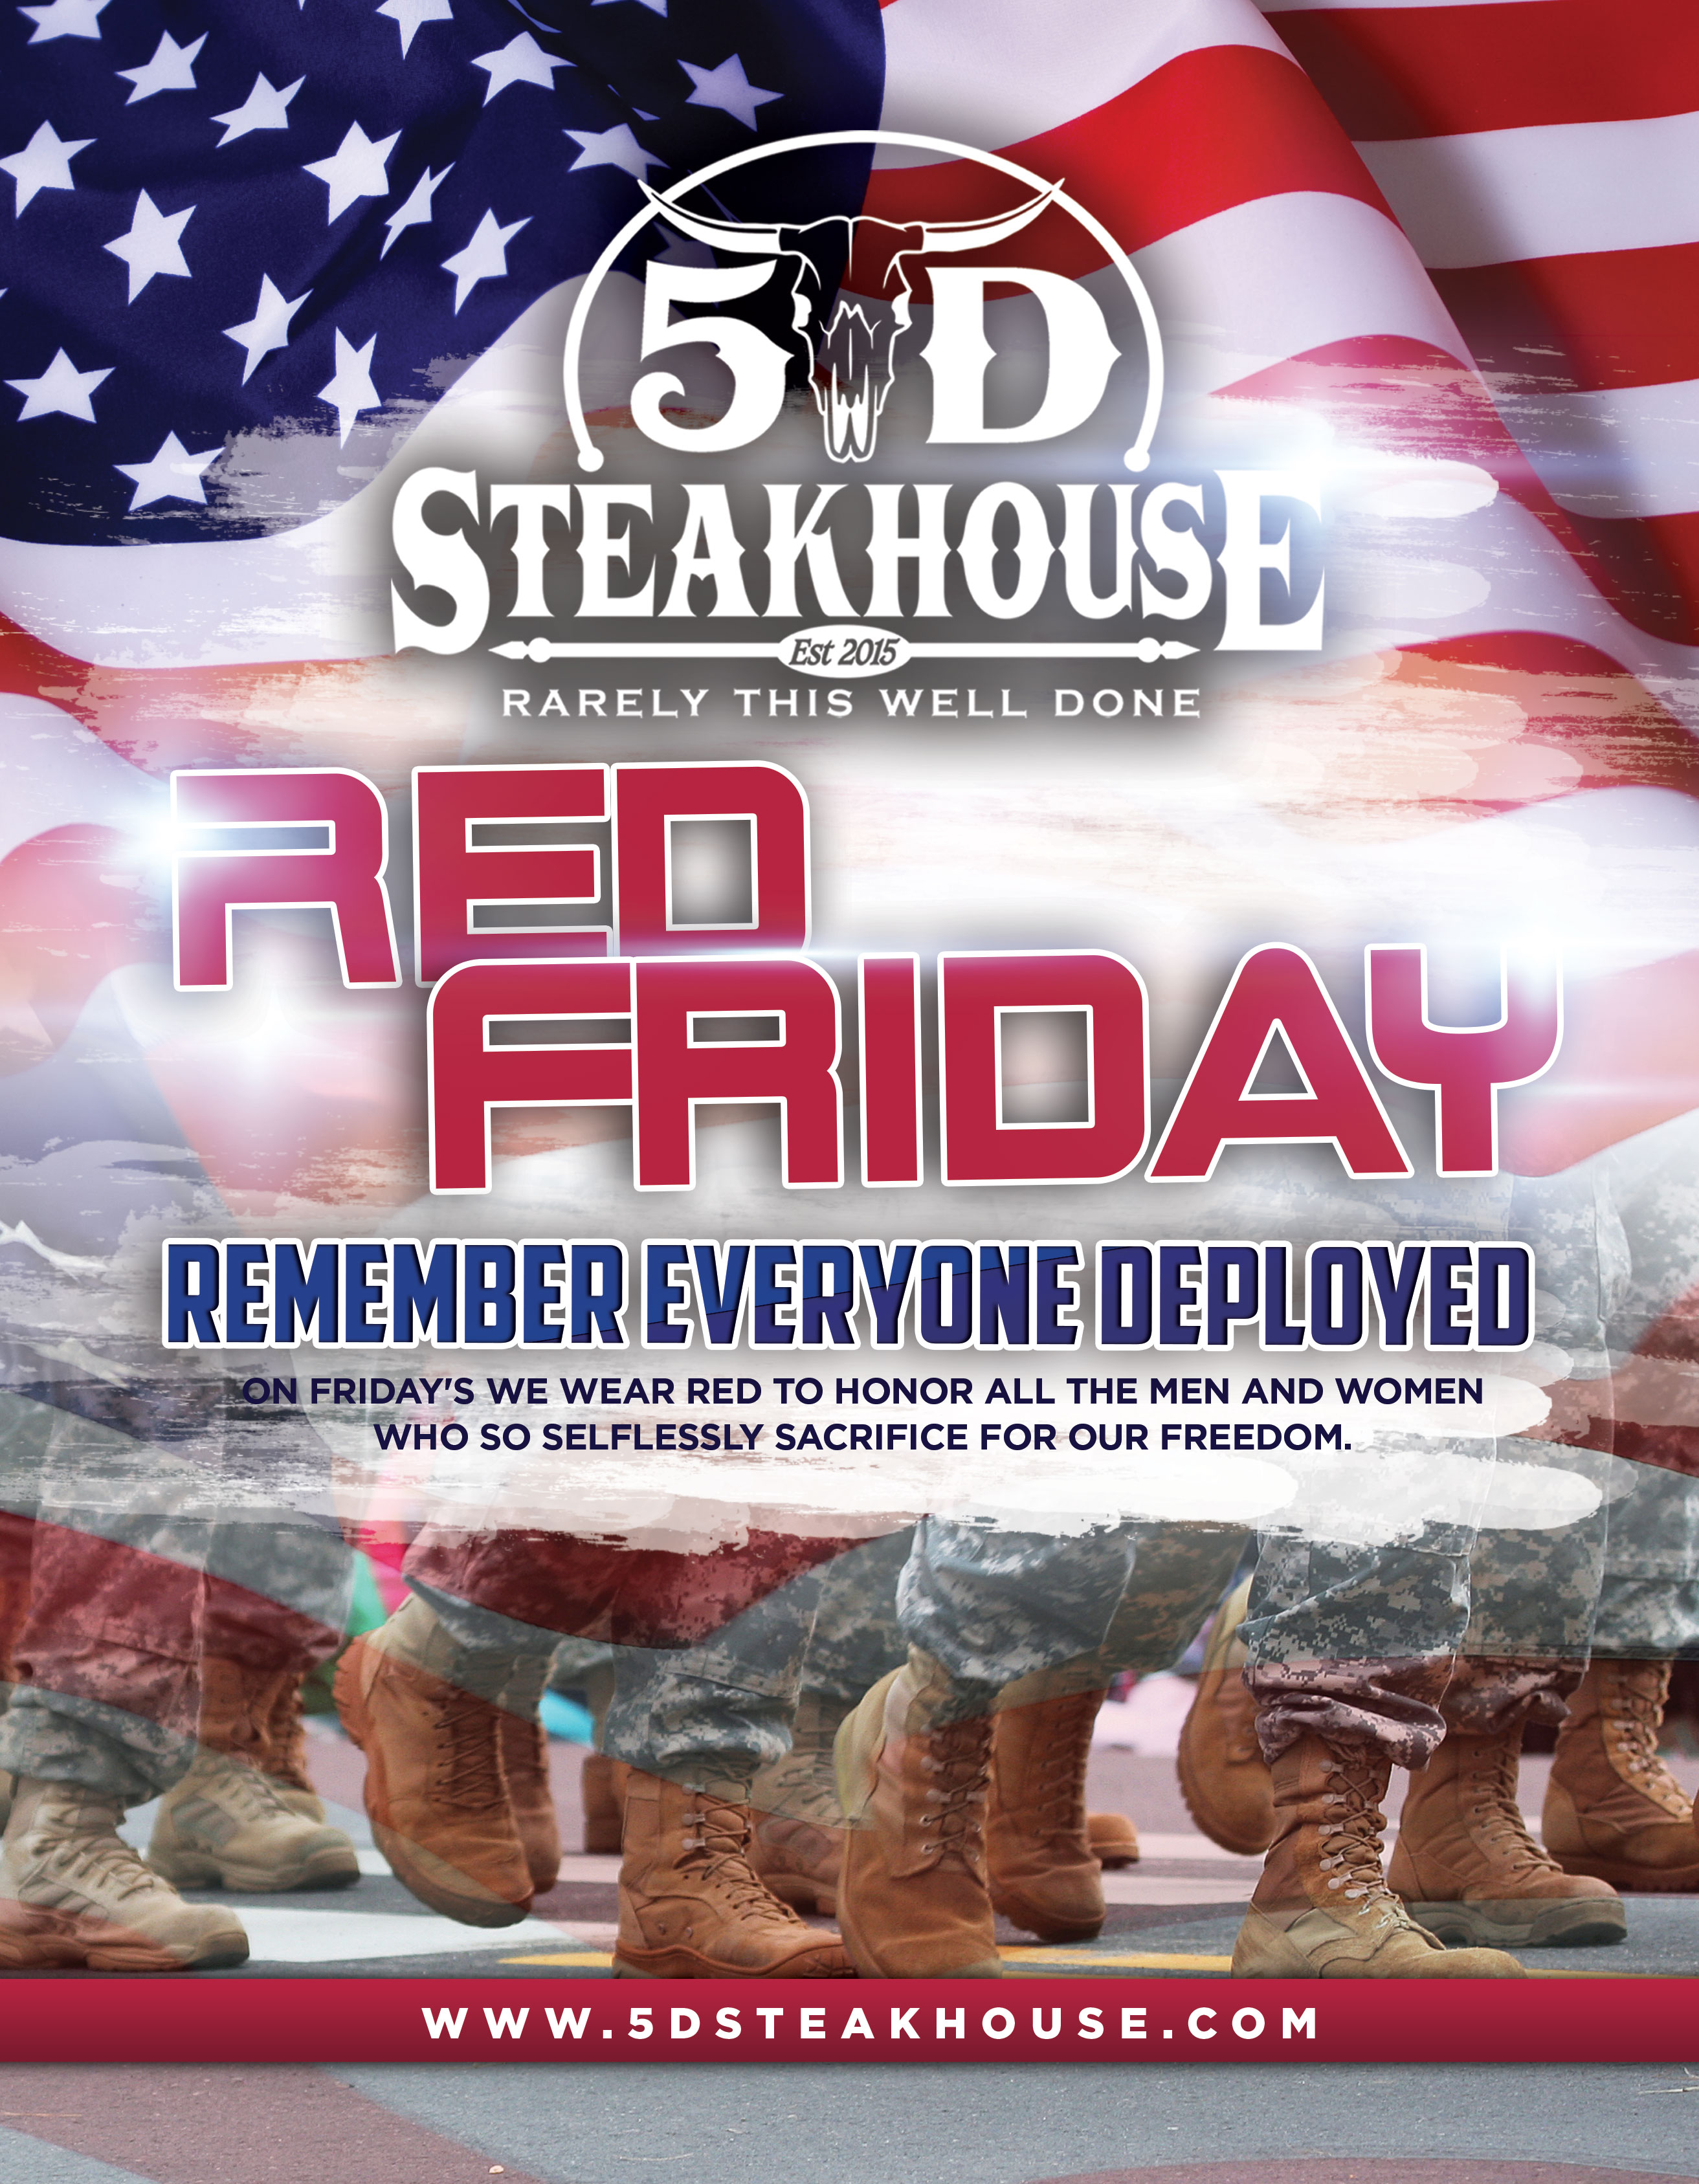 Red Friday - Remember everyone deployed. On Friday's we wear red to honor all the men and women who selflessly sacrifice for our freedom.